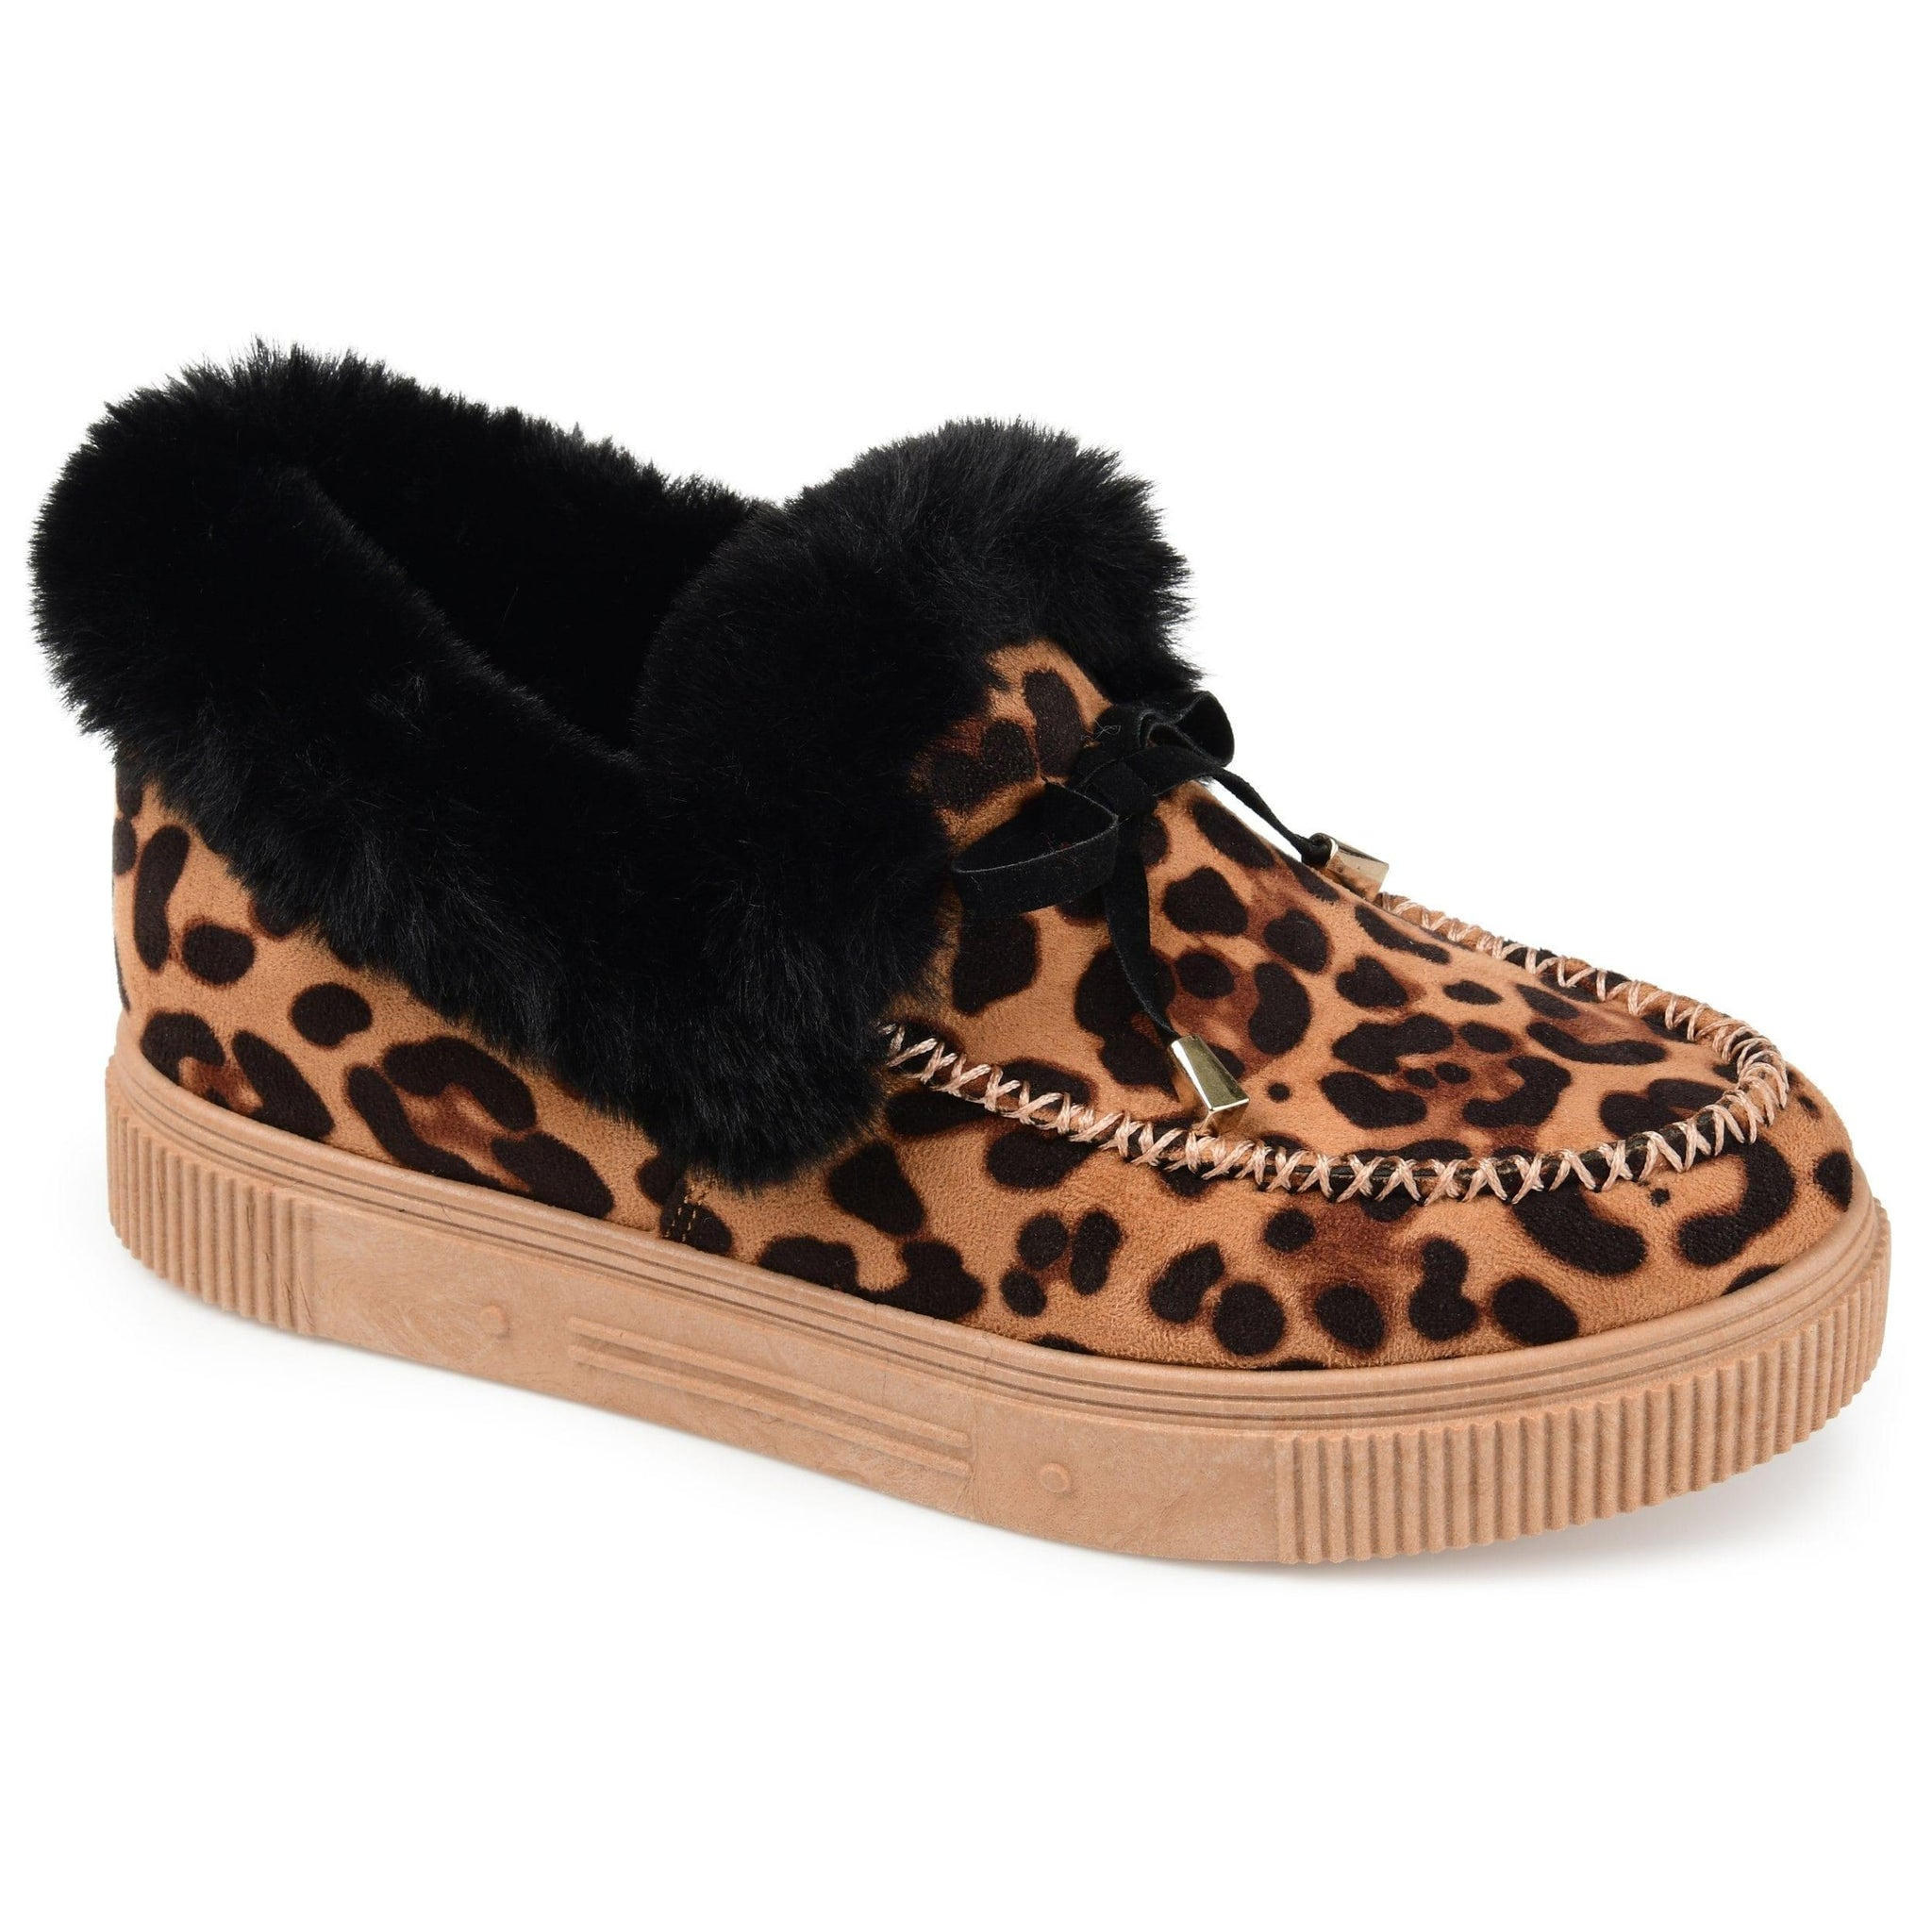 MIDNIGHT SHOES Journee Collection Leopard 9